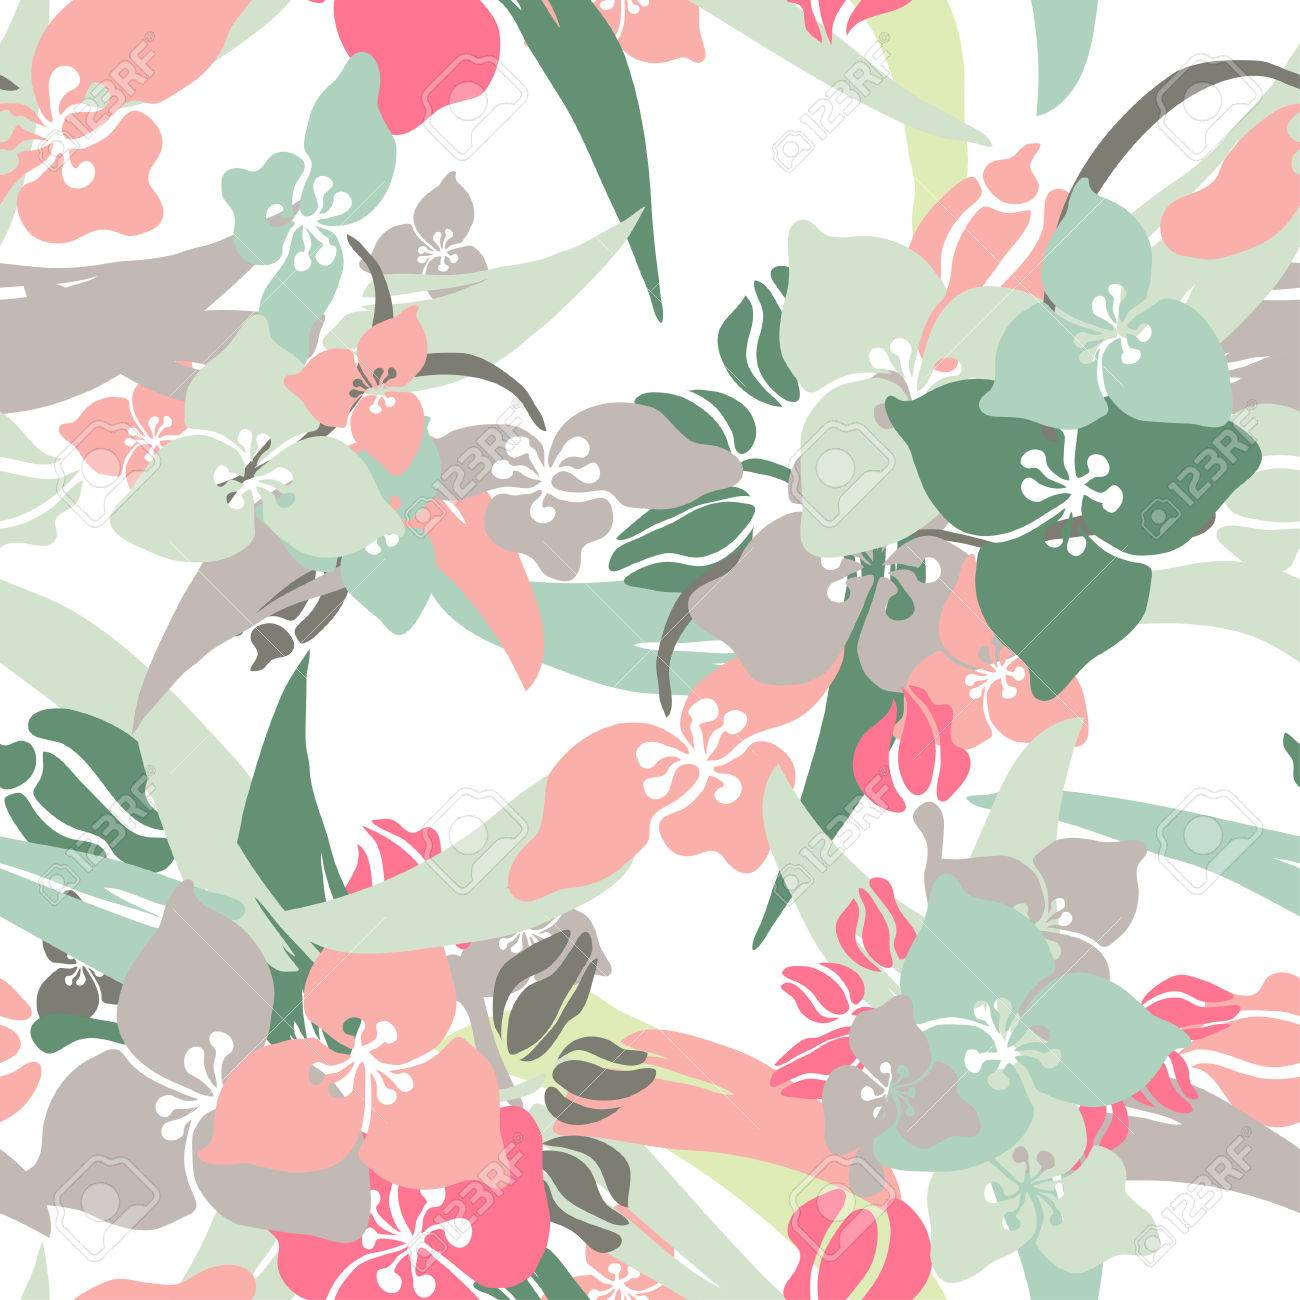 Elegant seamless pattern with hand drawn decorative lily flowers elegant seamless pattern with hand drawn decorative lily flowers design elements floral pattern for dhlflorist Images